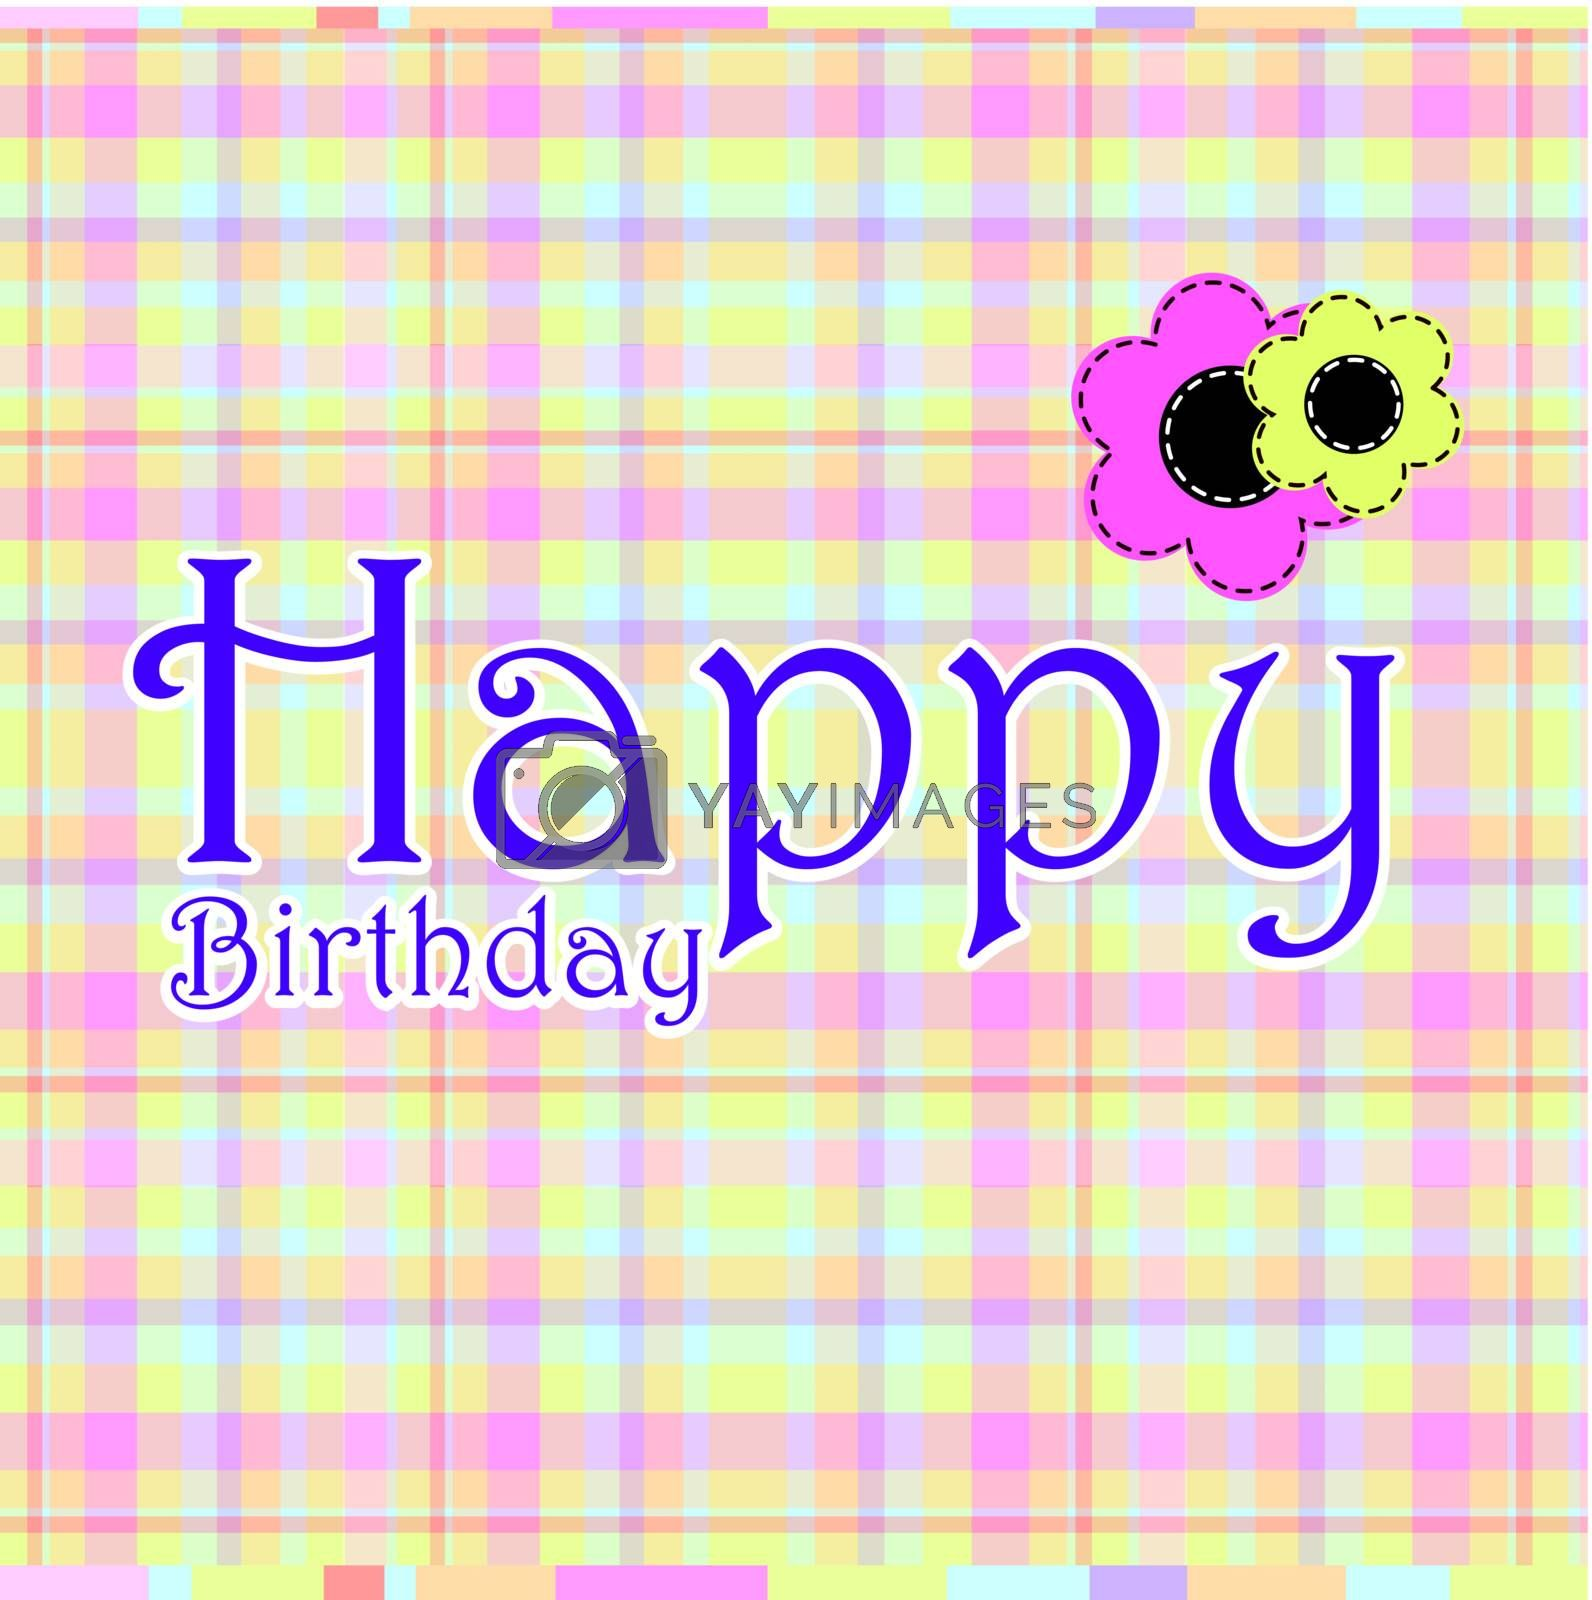 birthday card with flowers over colors background